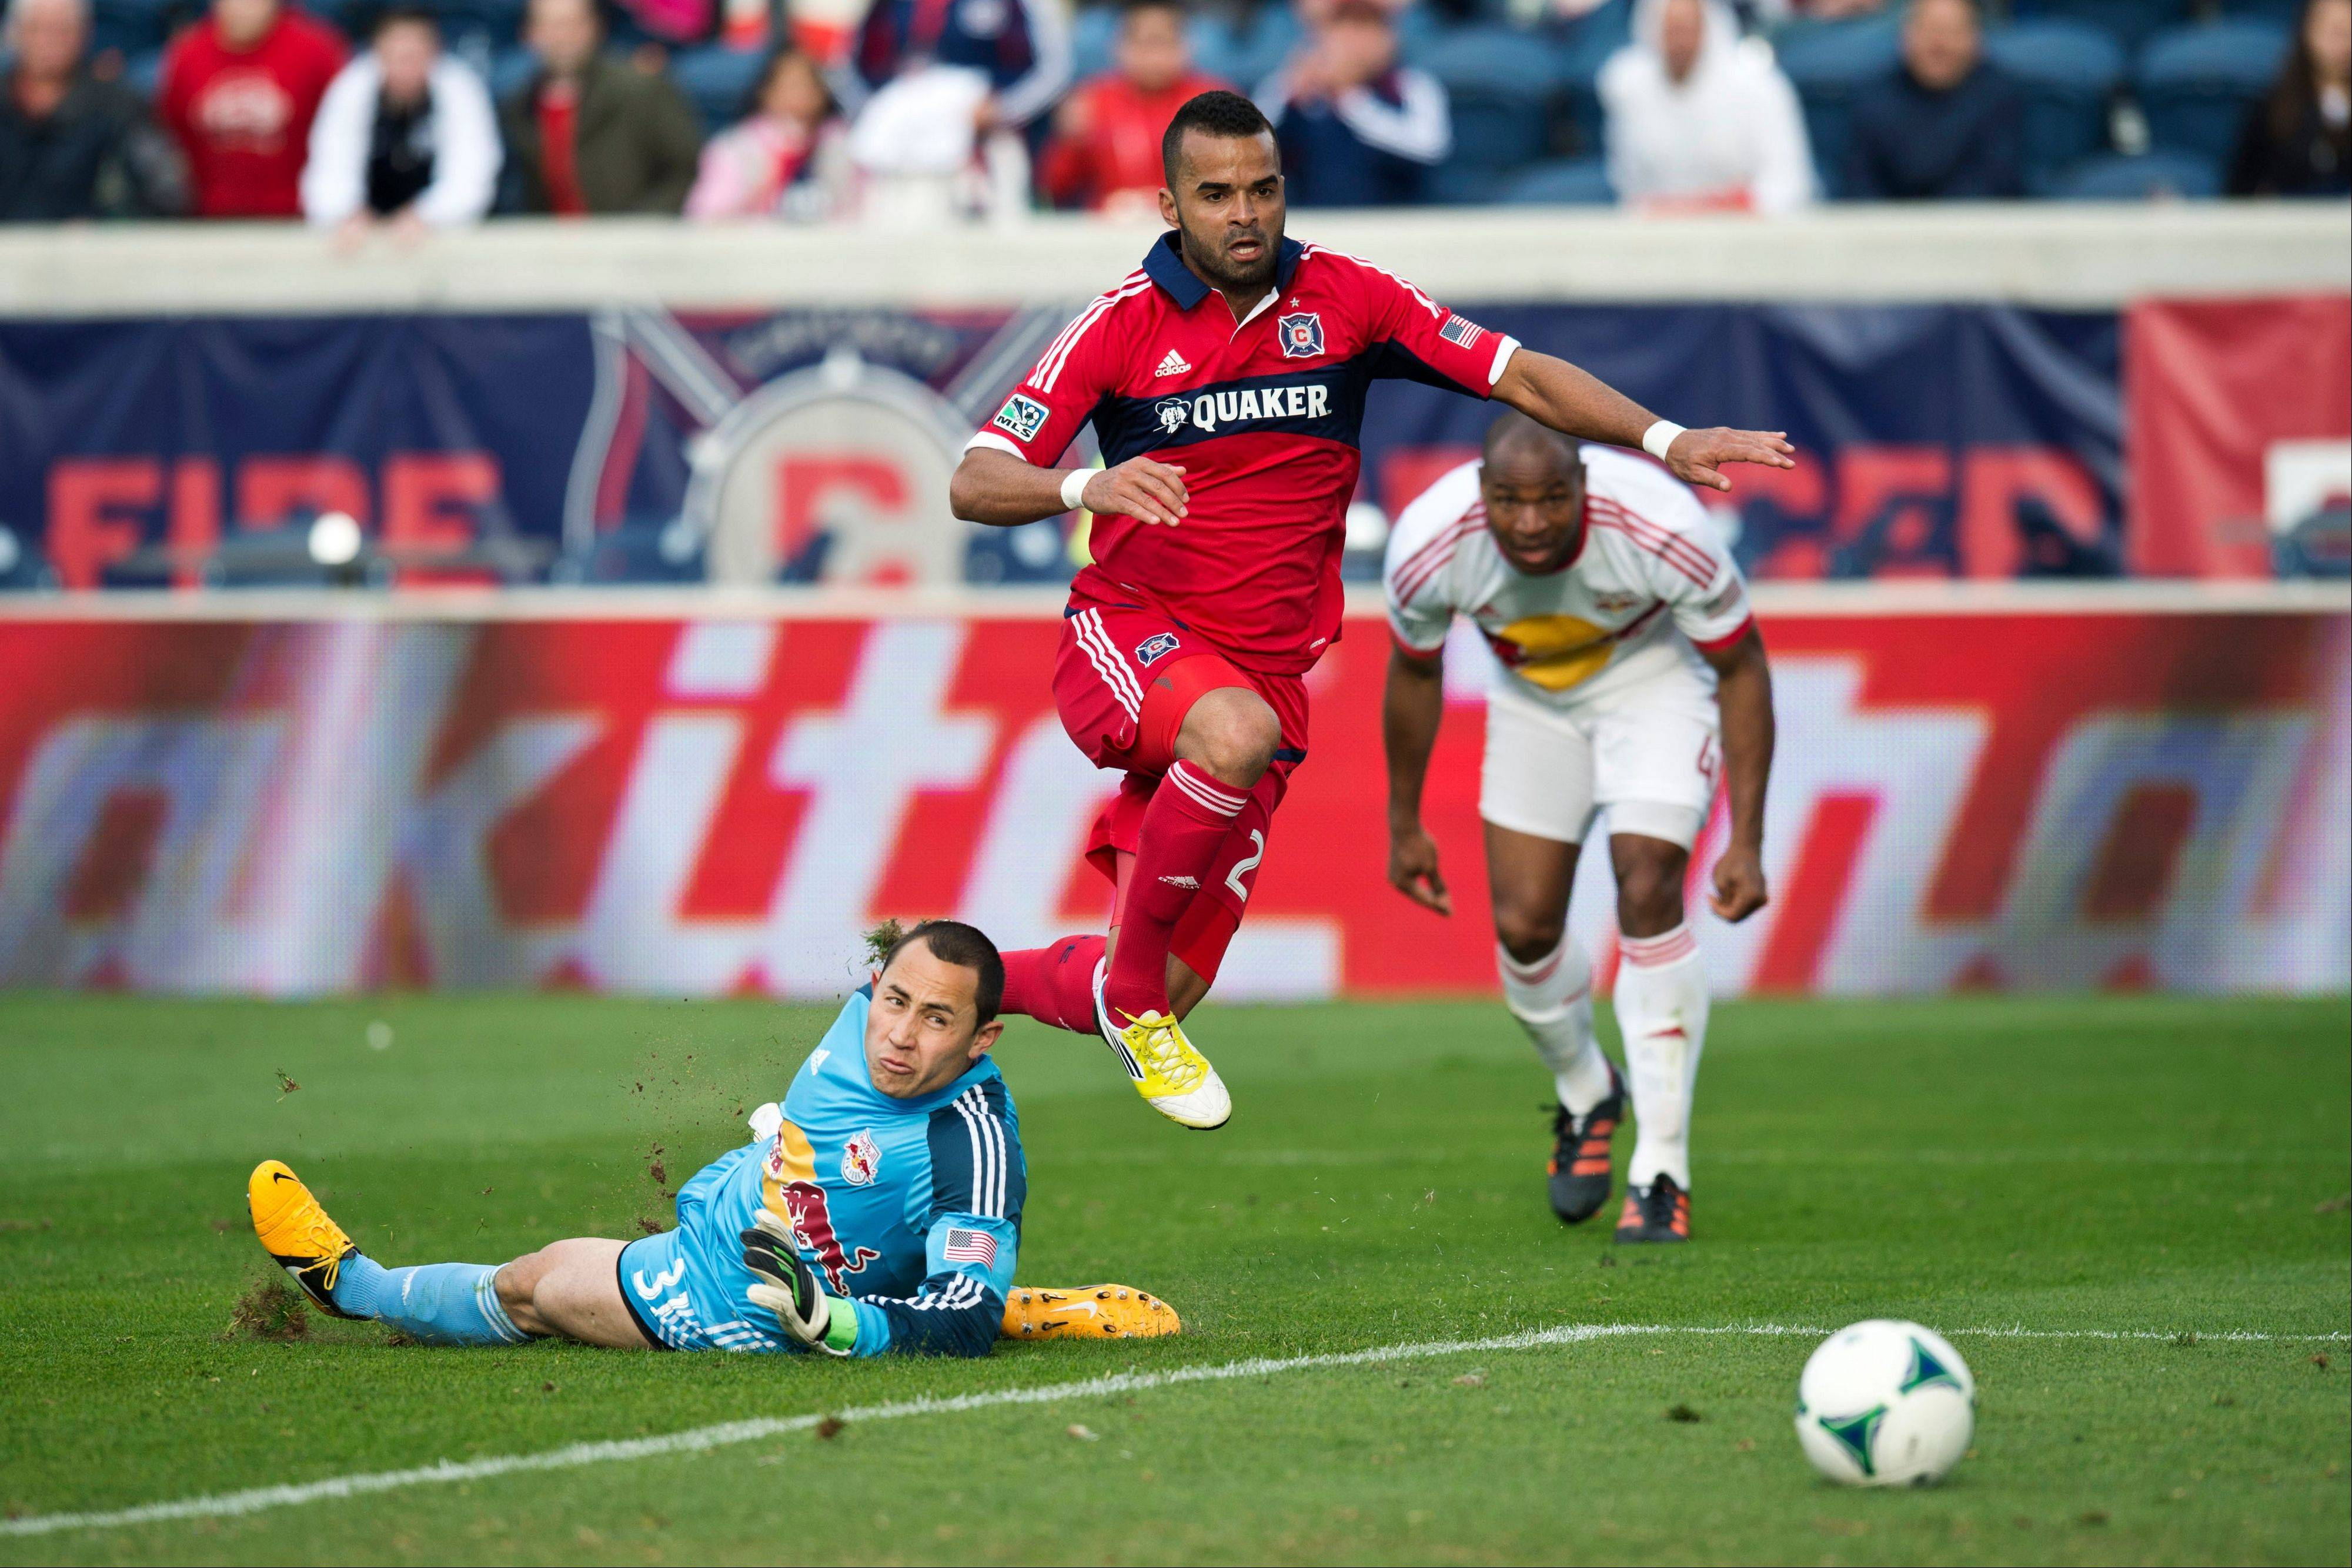 In this photo provided by the Chicago Fire, Chicago Fire forward Maicon Santos, center, scores past New York Red Bulls goalkeeper Luis Robles, left, as defender Jamison Olave watches during the second half of an MLS soccer match, Sunday, April 7, 2013, in Bridgeview, Ill. The Fire won 3-1.